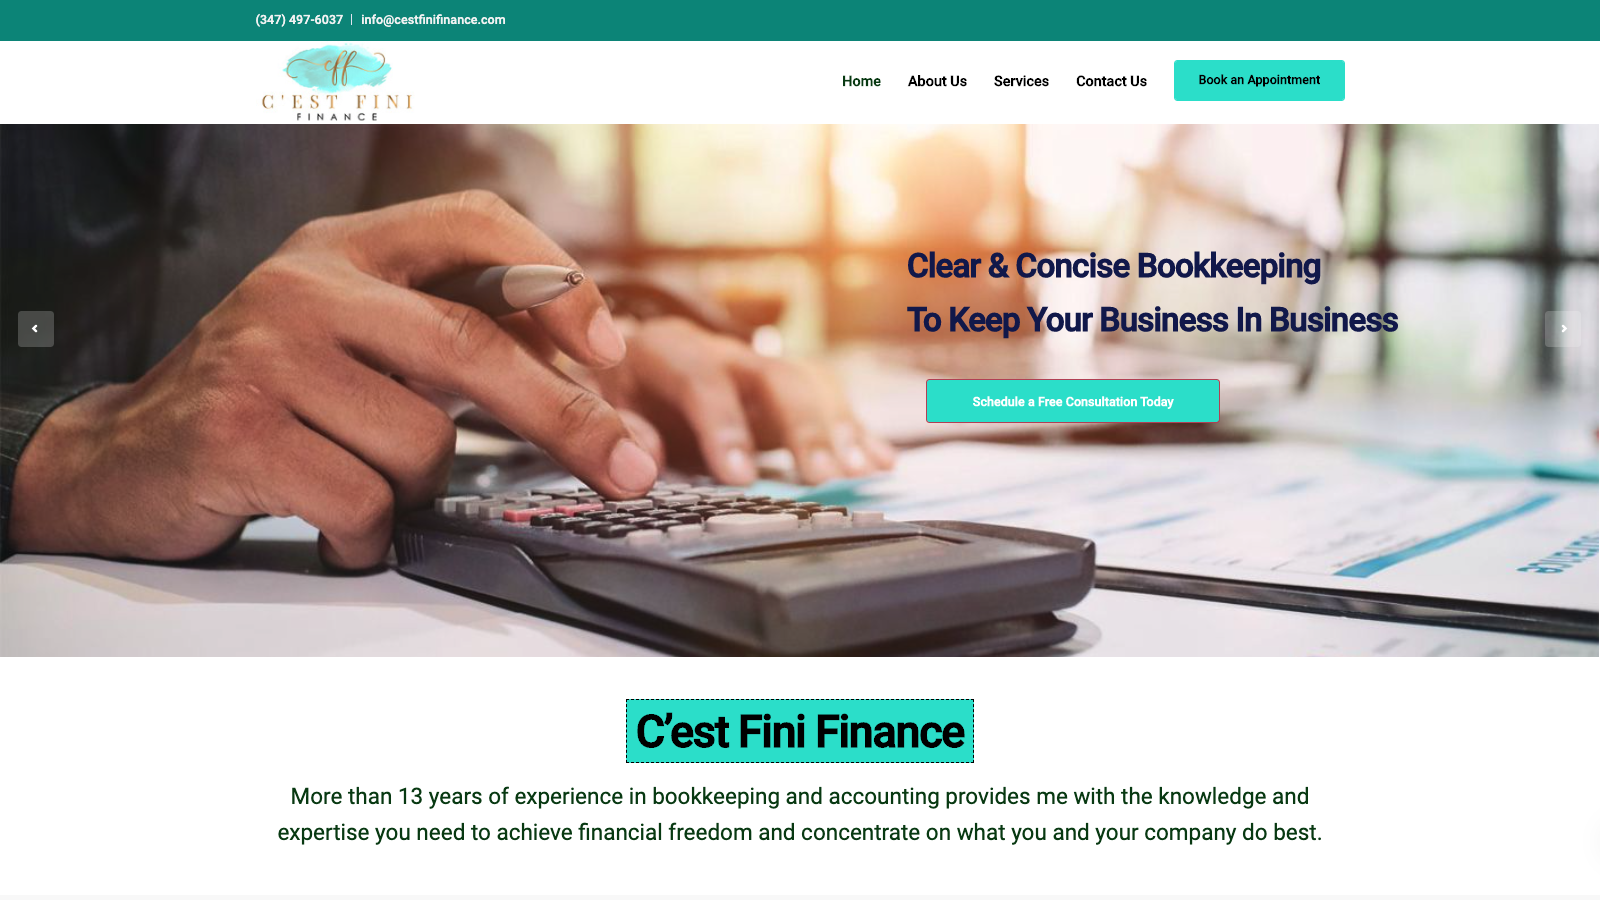 C'est Fini Finance Website Copywriting Project